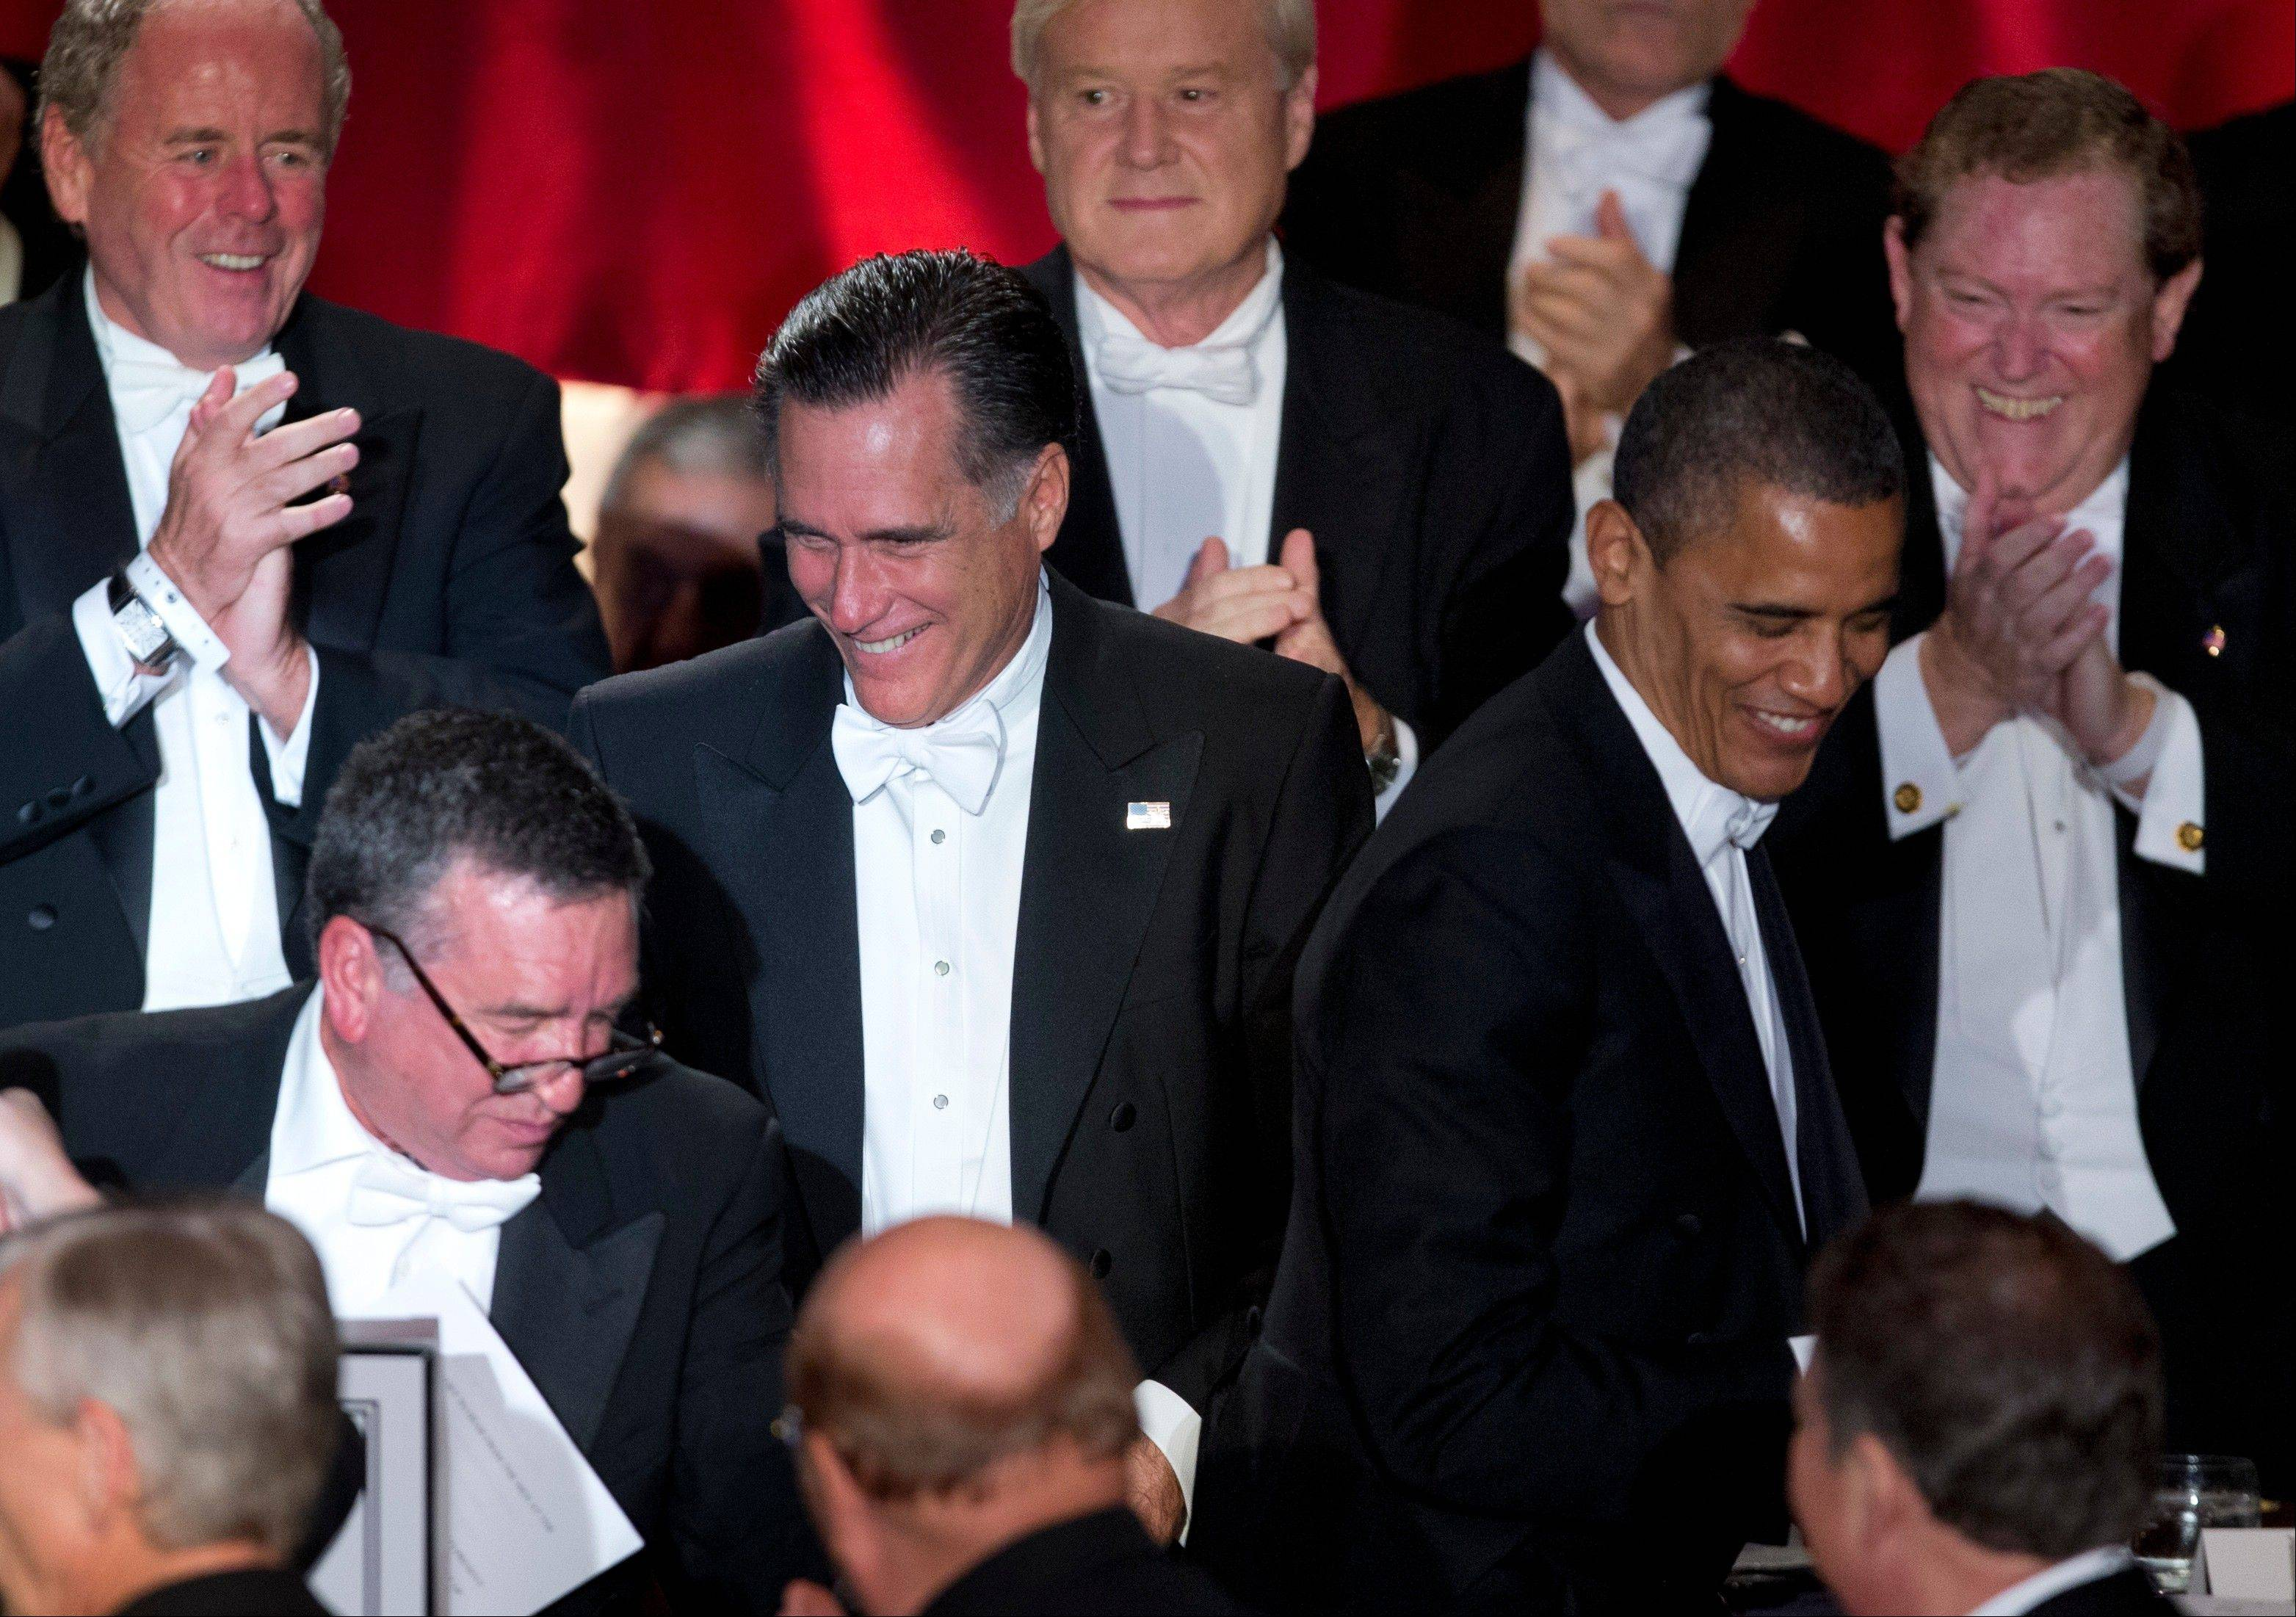 President Barack Obama and Republican presidential candidate, former Massachusetts Gov. Mitt Romney, attend the Archdiocese of New York's 67th Annual Alfred. E. Smith Memorial Foundation Dinner, Thursday at the Waldorf Astoria Hotel in New York.